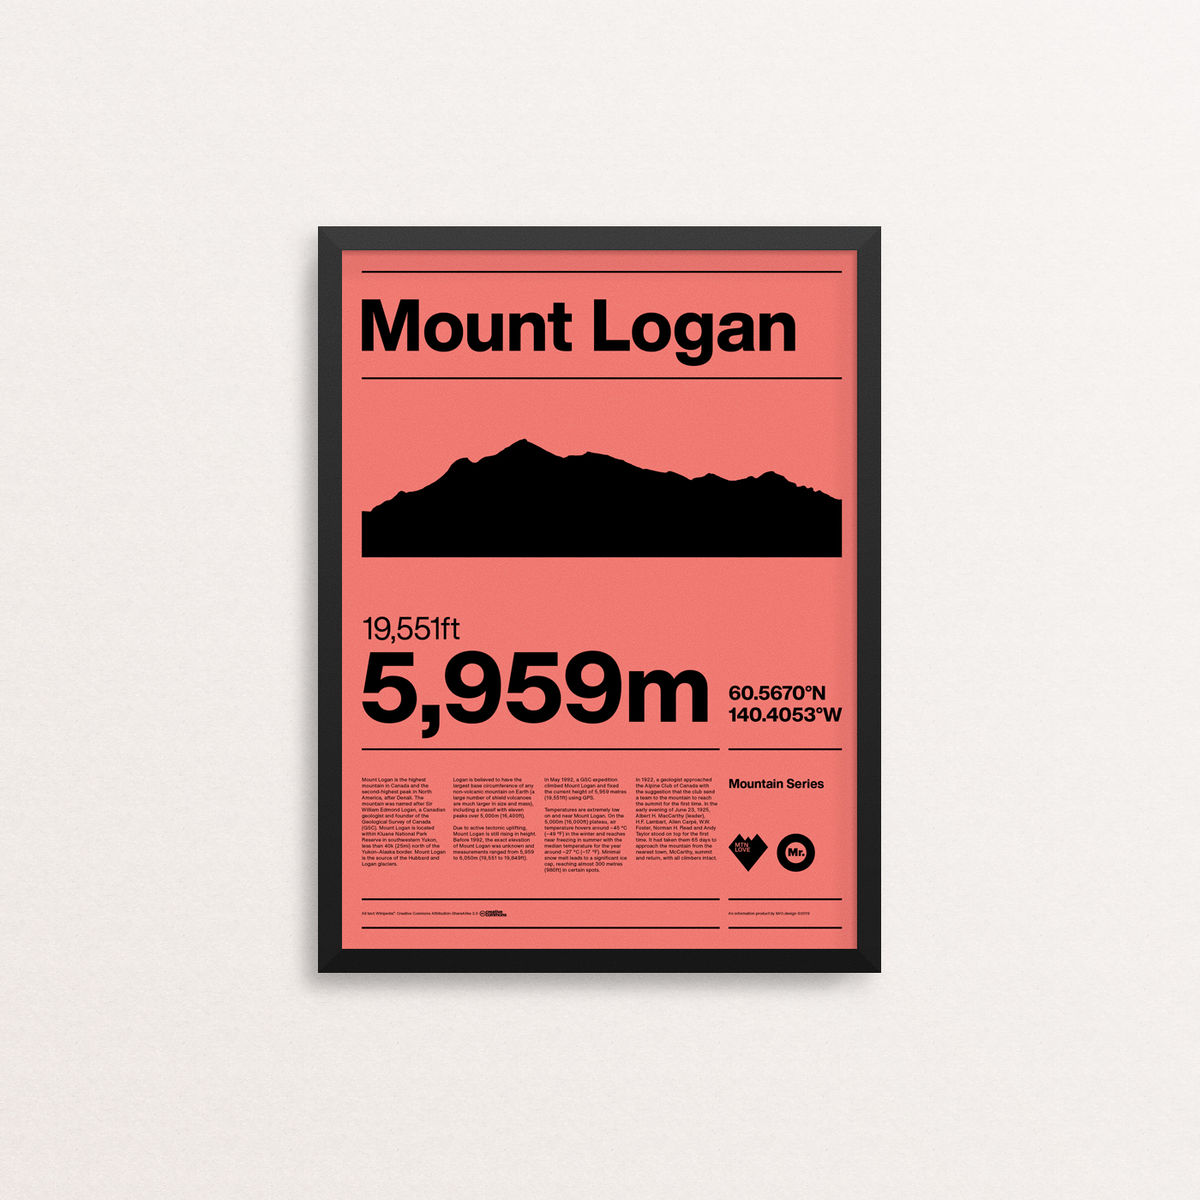 MTN Love - Mount Logan - product image